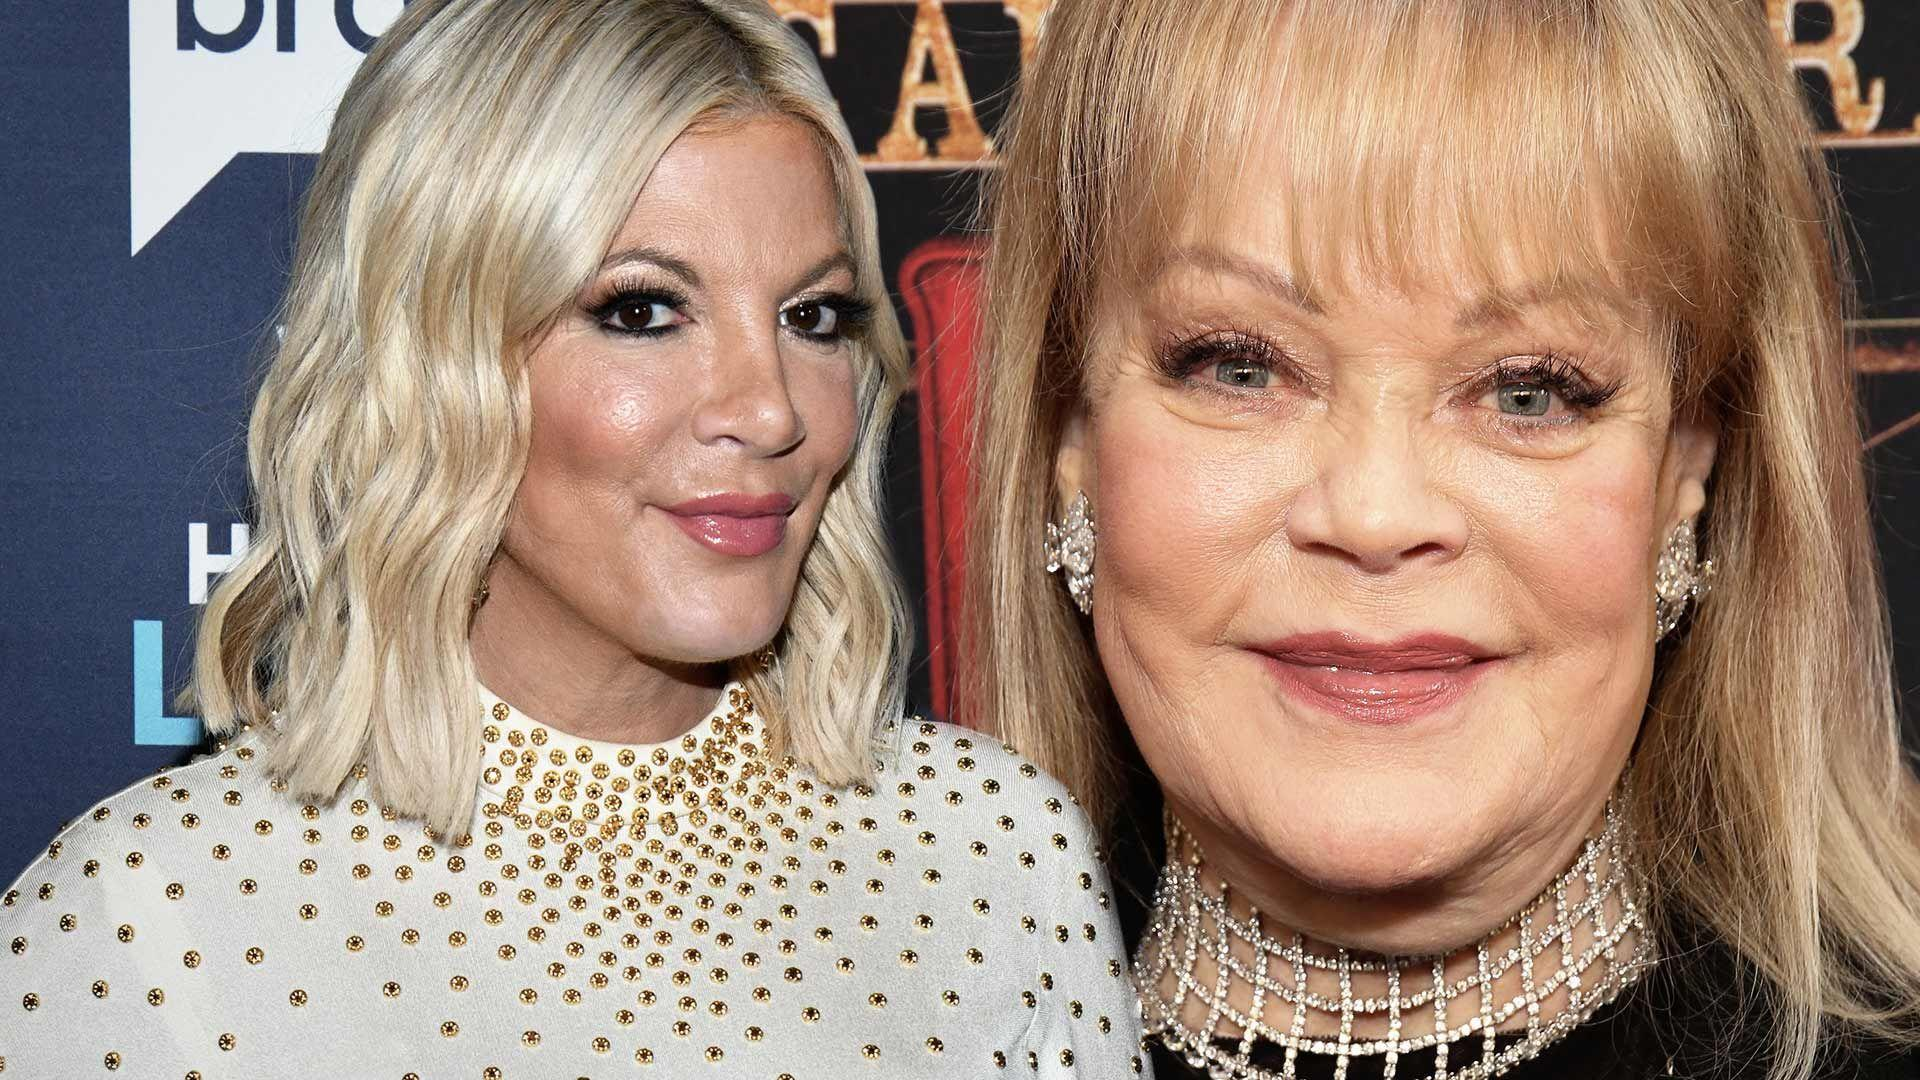 90210' Star Tori Spelling No Longer Feuding With Mom Candy Spelling